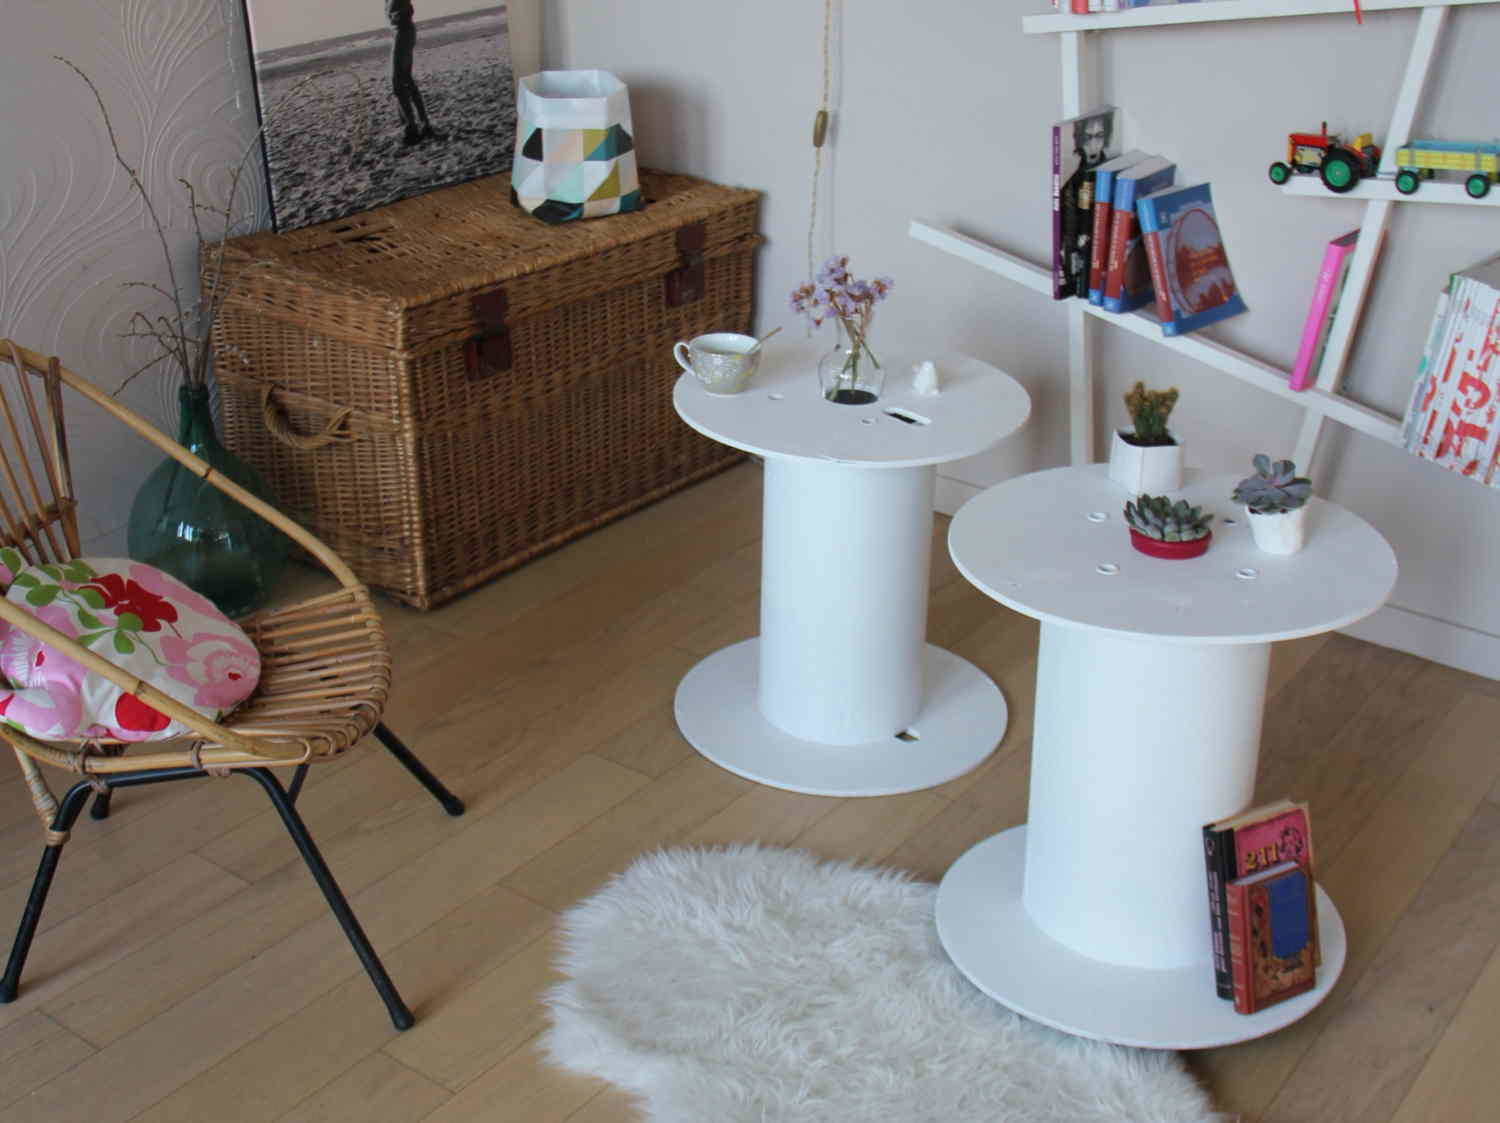 diy : fabriquer une table basse design | leroy merlin